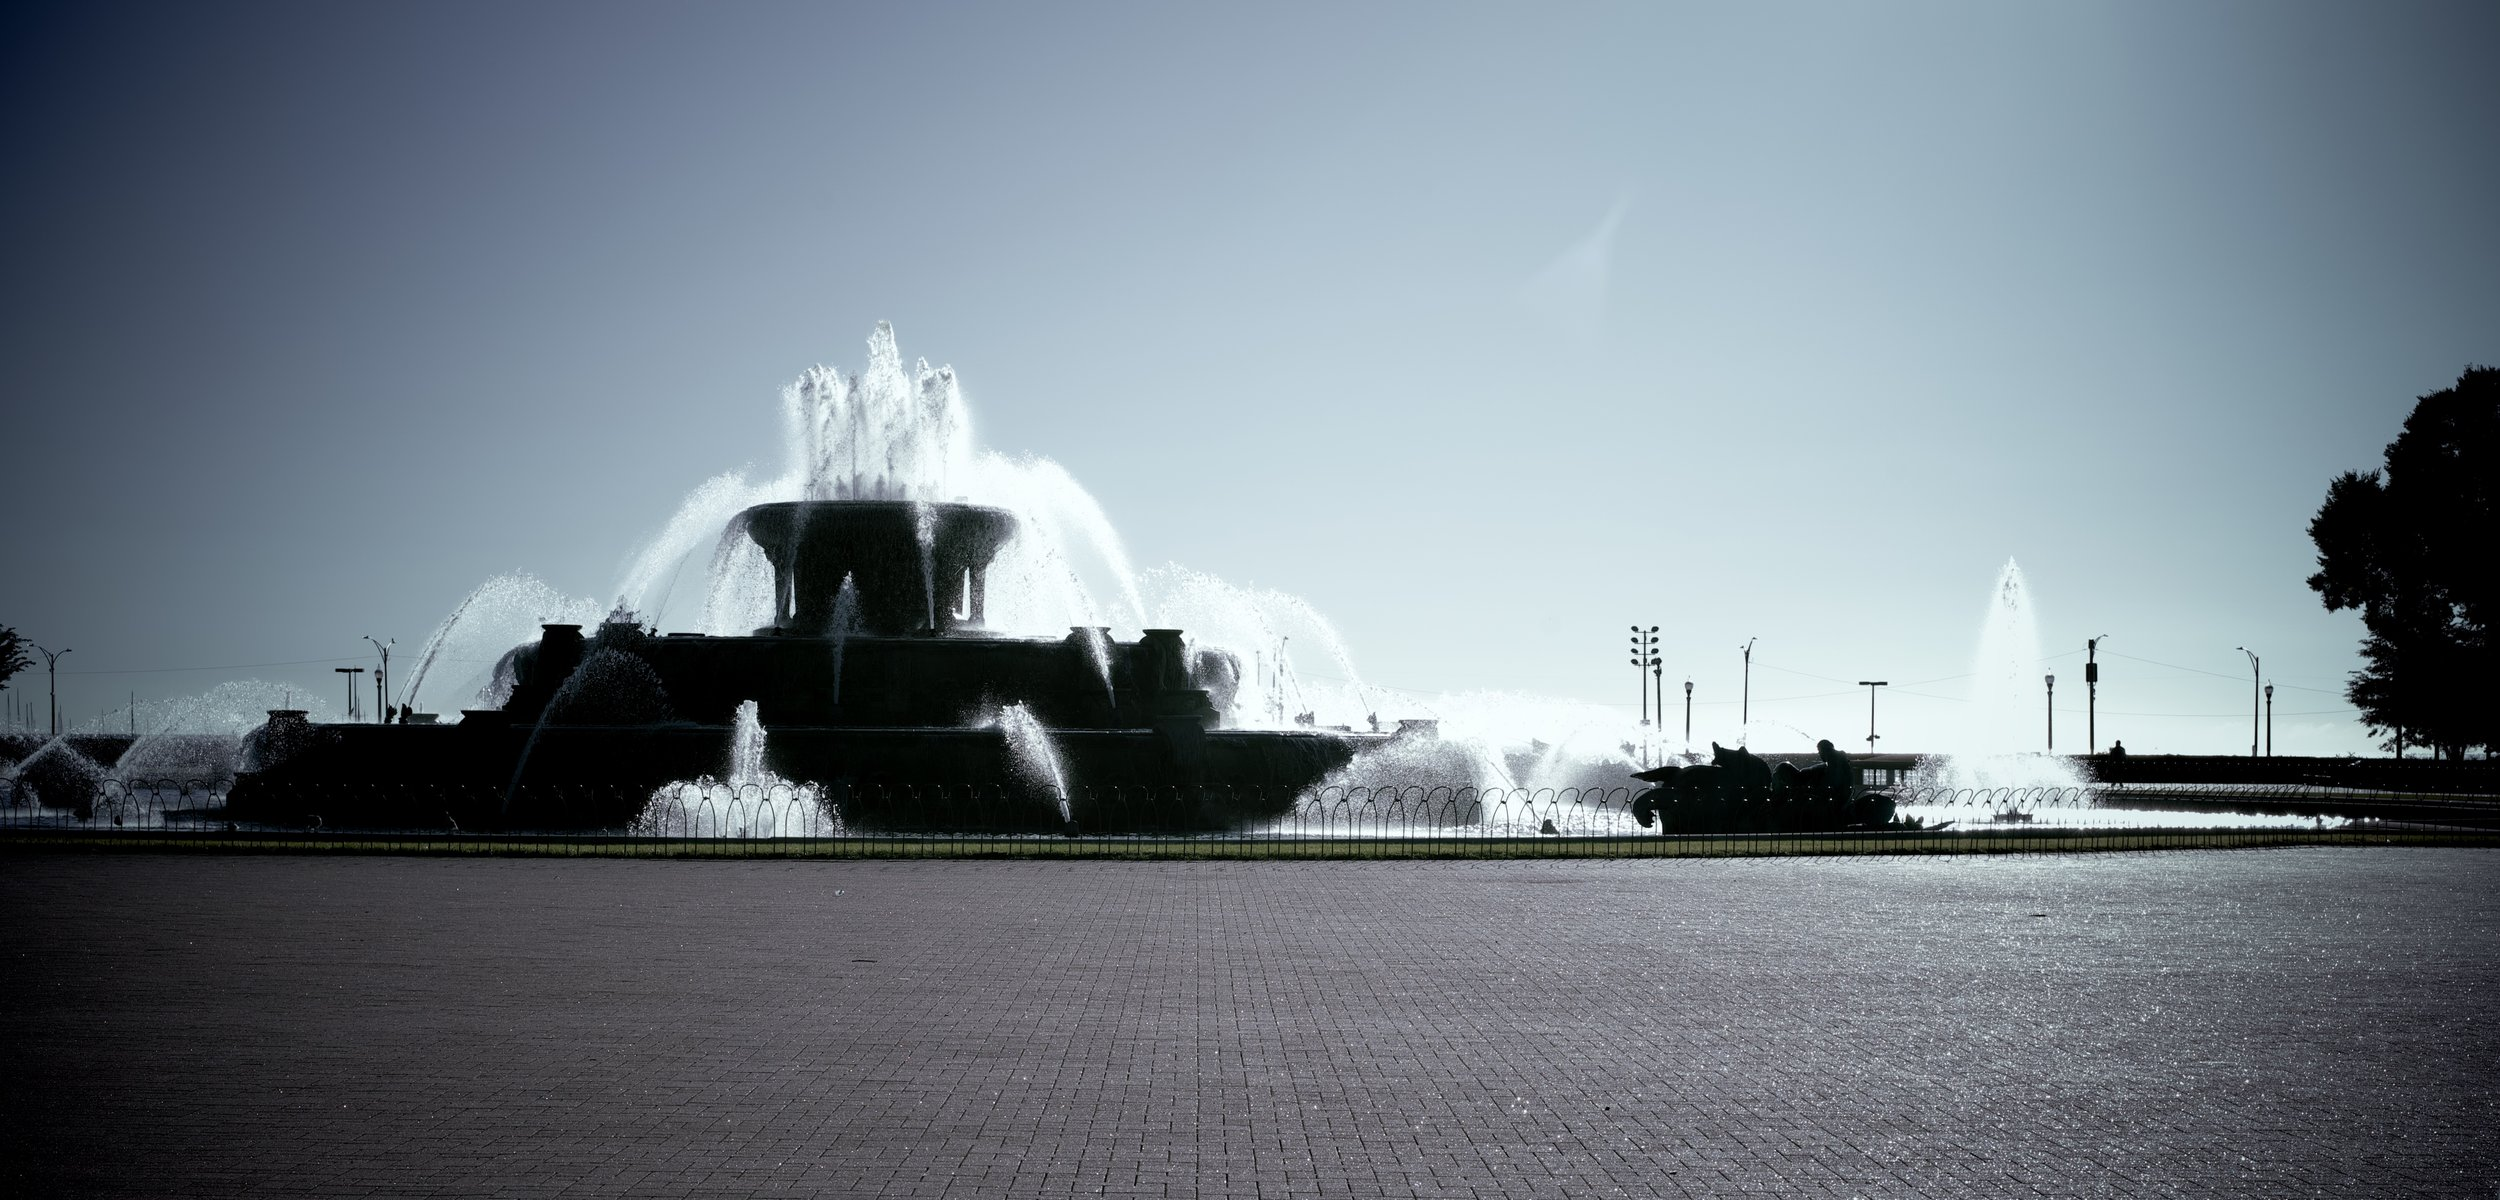 Grant Park Fountain. Chicago, Illinois. September 2019. © William D. Walker